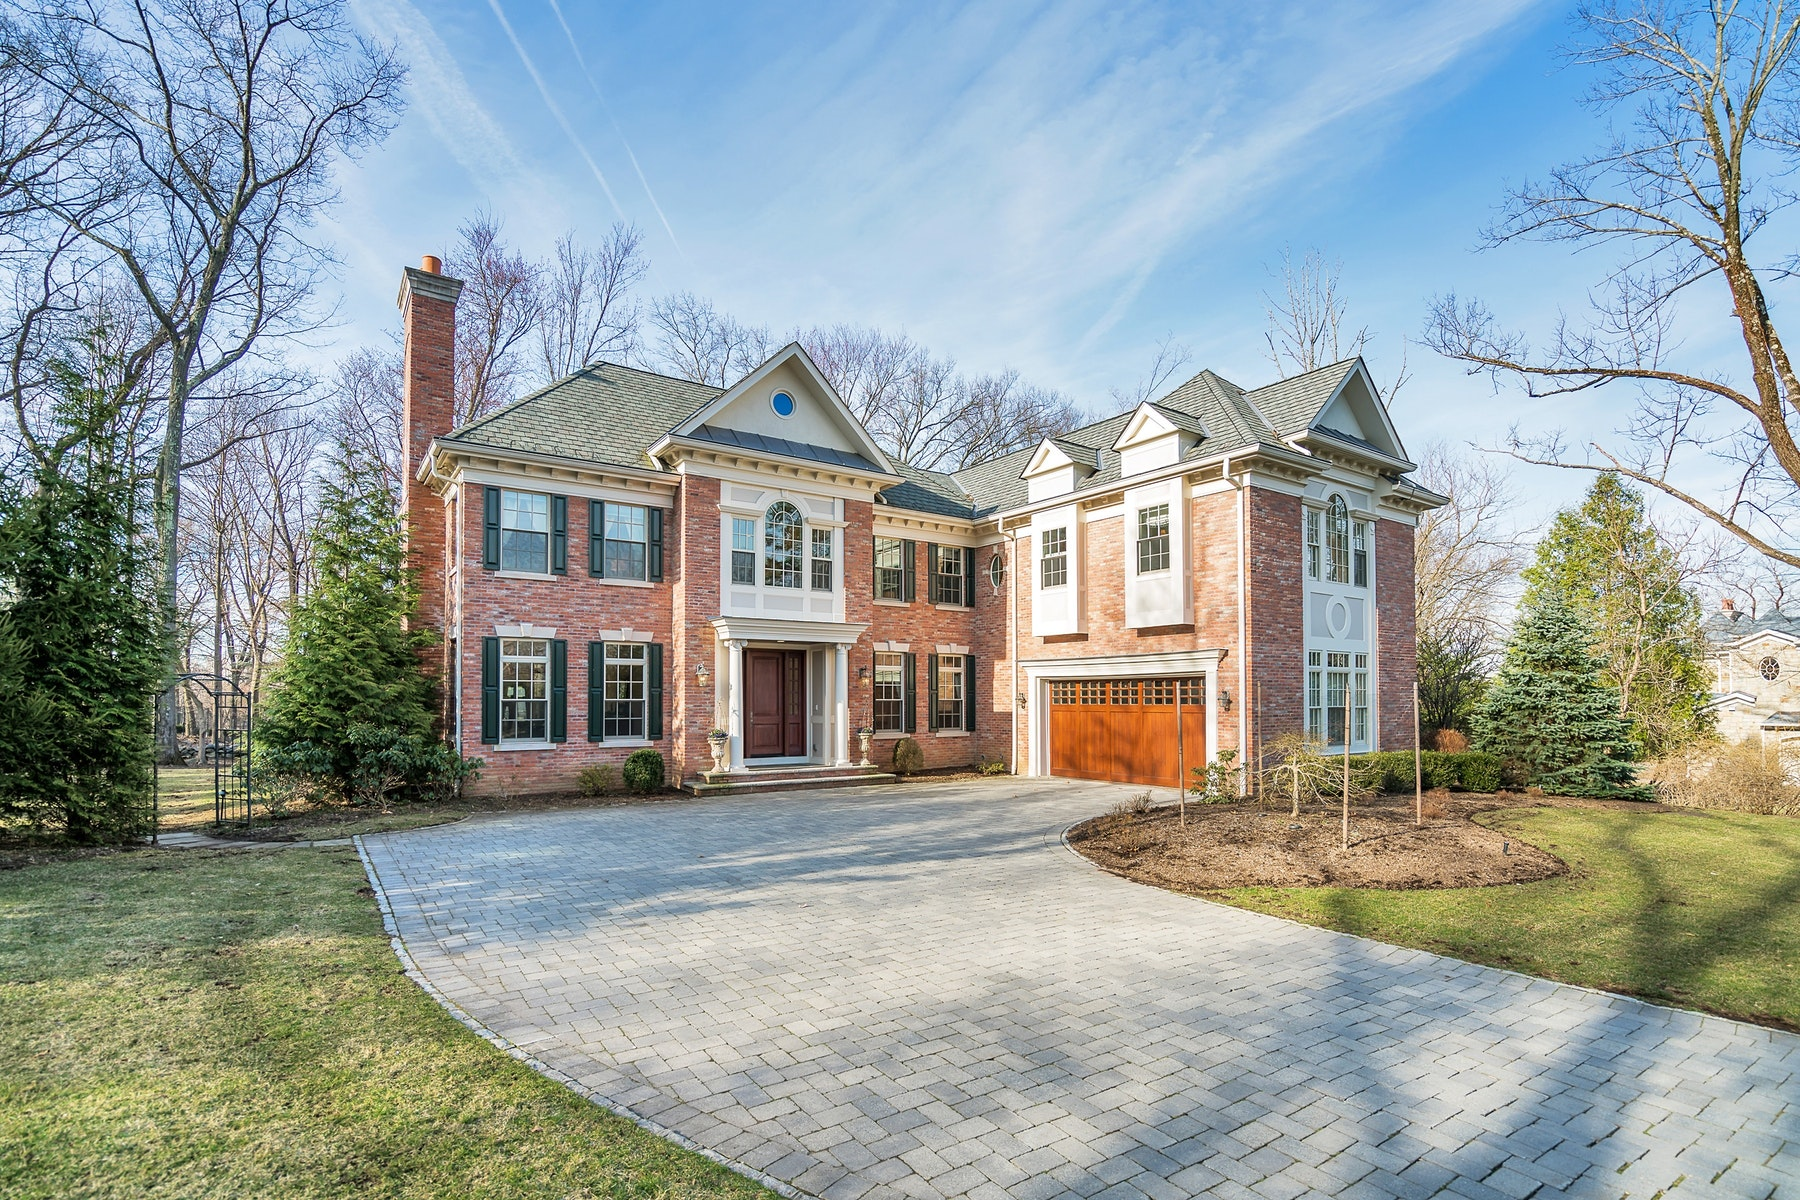 Single Family Homes for Sale at Inspiring 16 Old Woods Road Saddle River, New Jersey 07458 United States